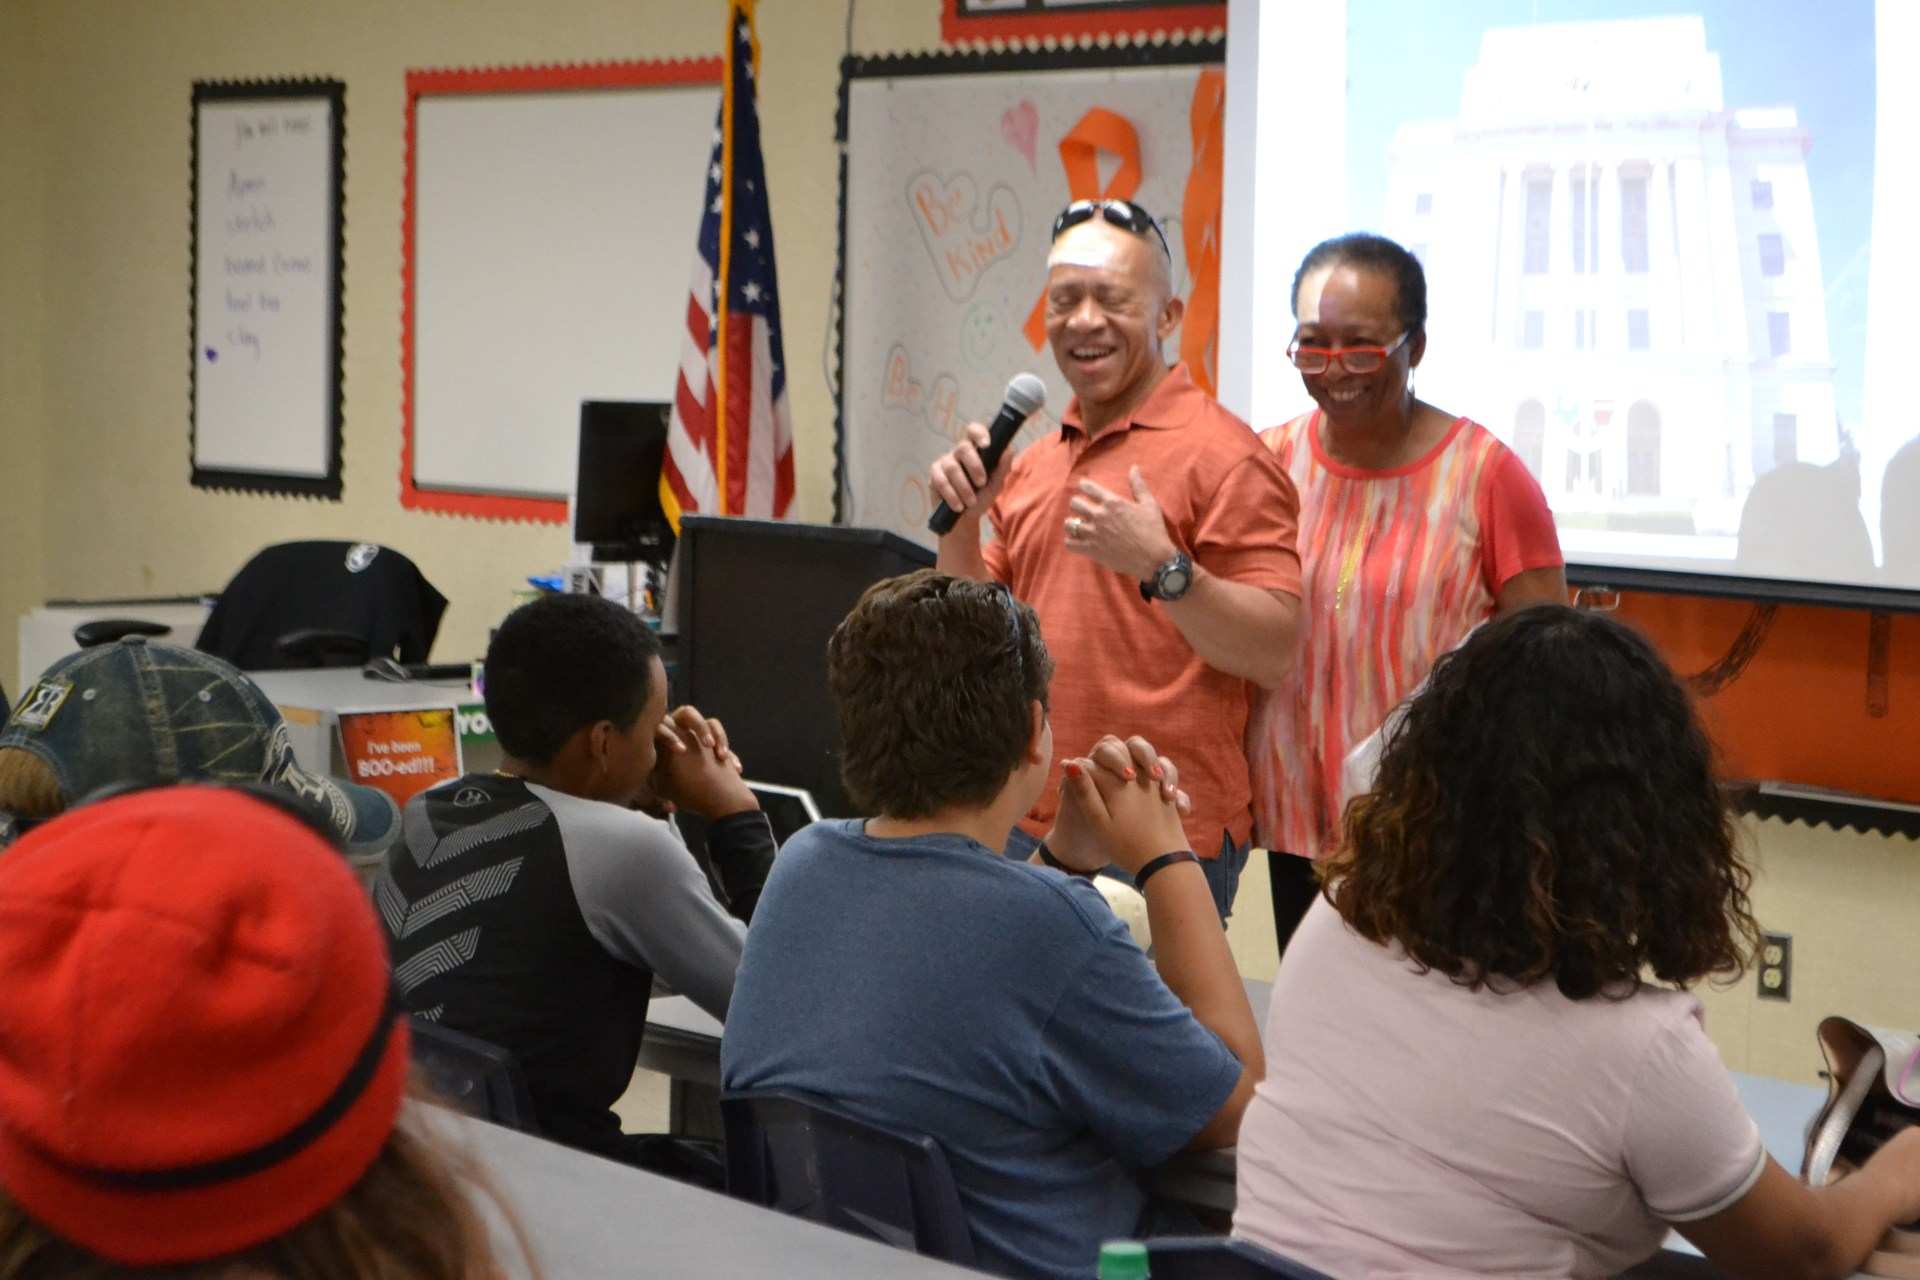 Photo: Patricia and Bobby Burns, Jr. speaking to Sequoia students